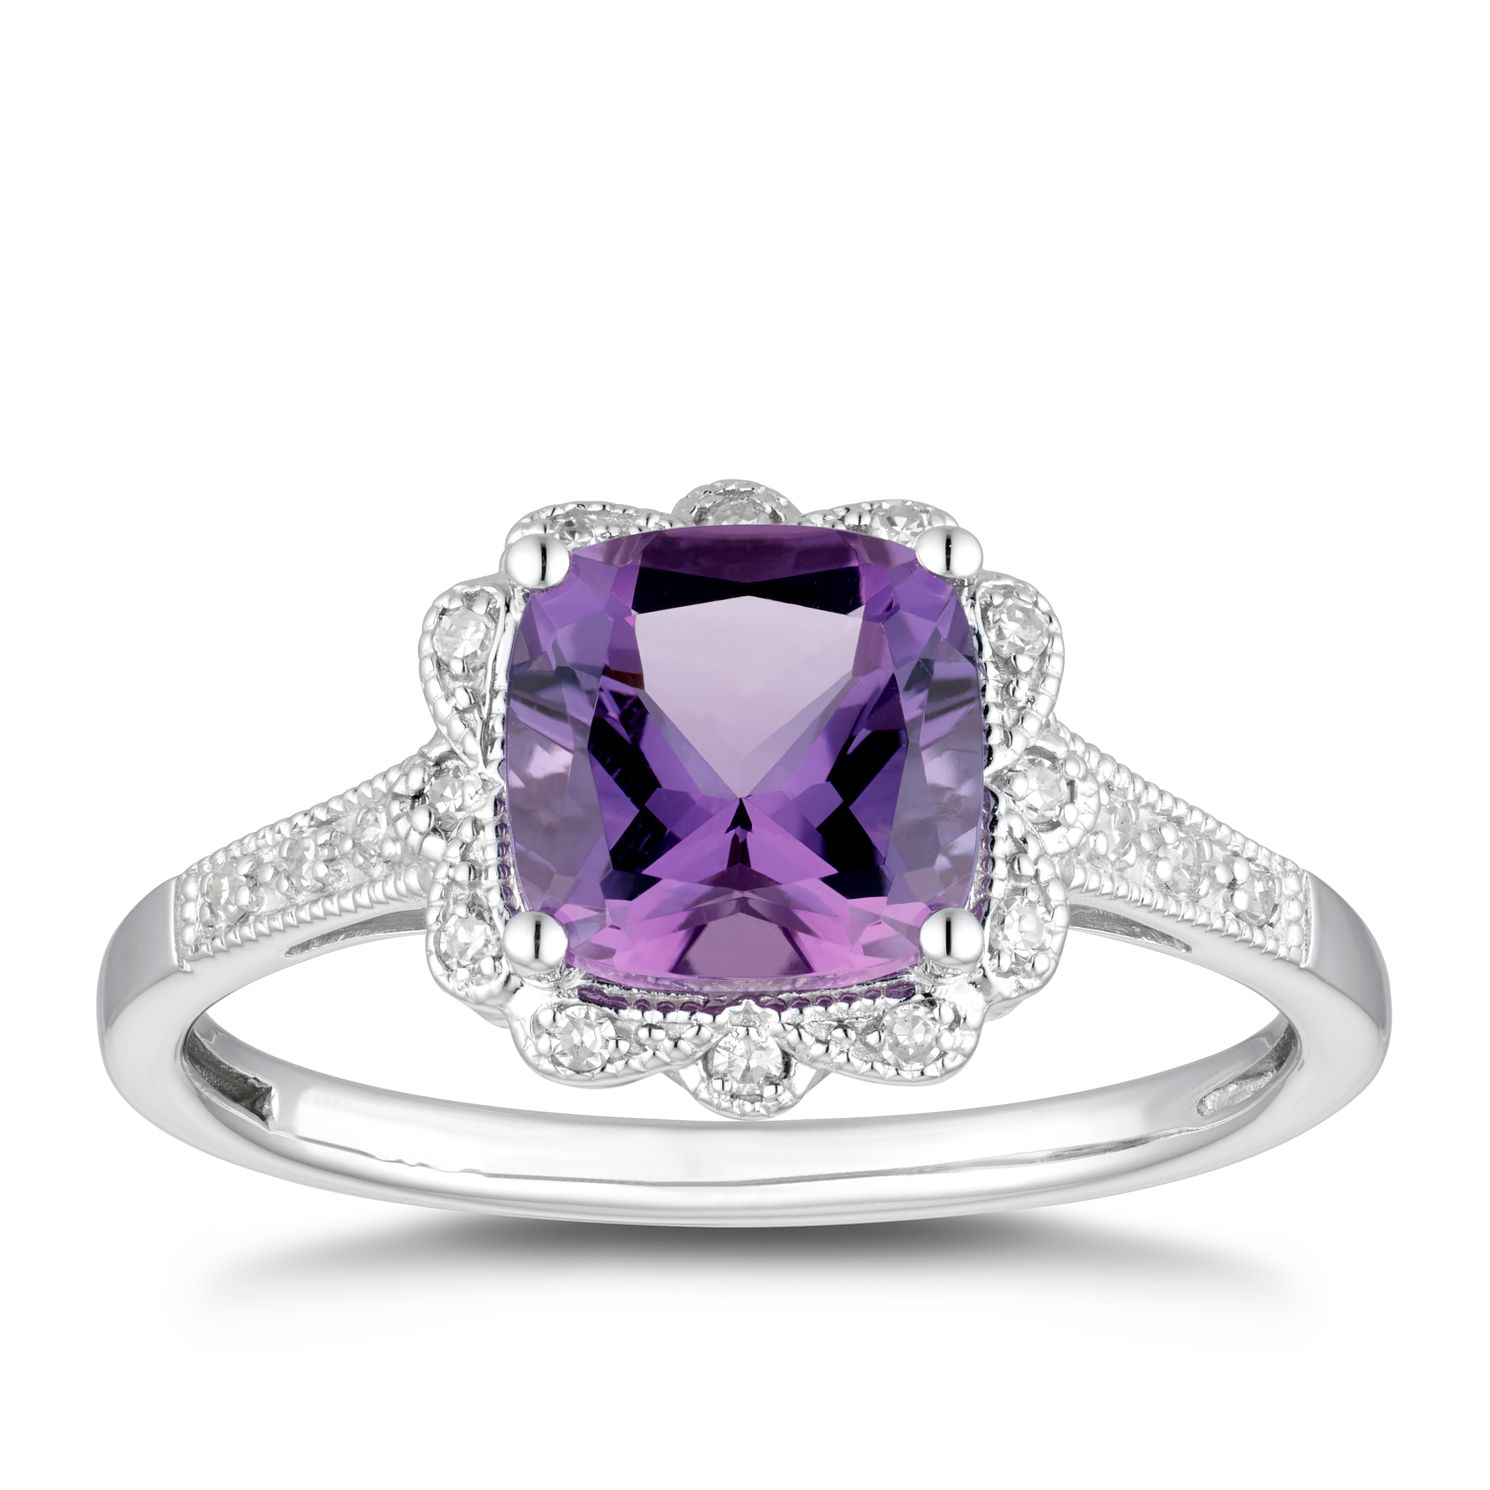 9ct White Gold Amethyst & Diamond Vintage Ring - Product number 5169887